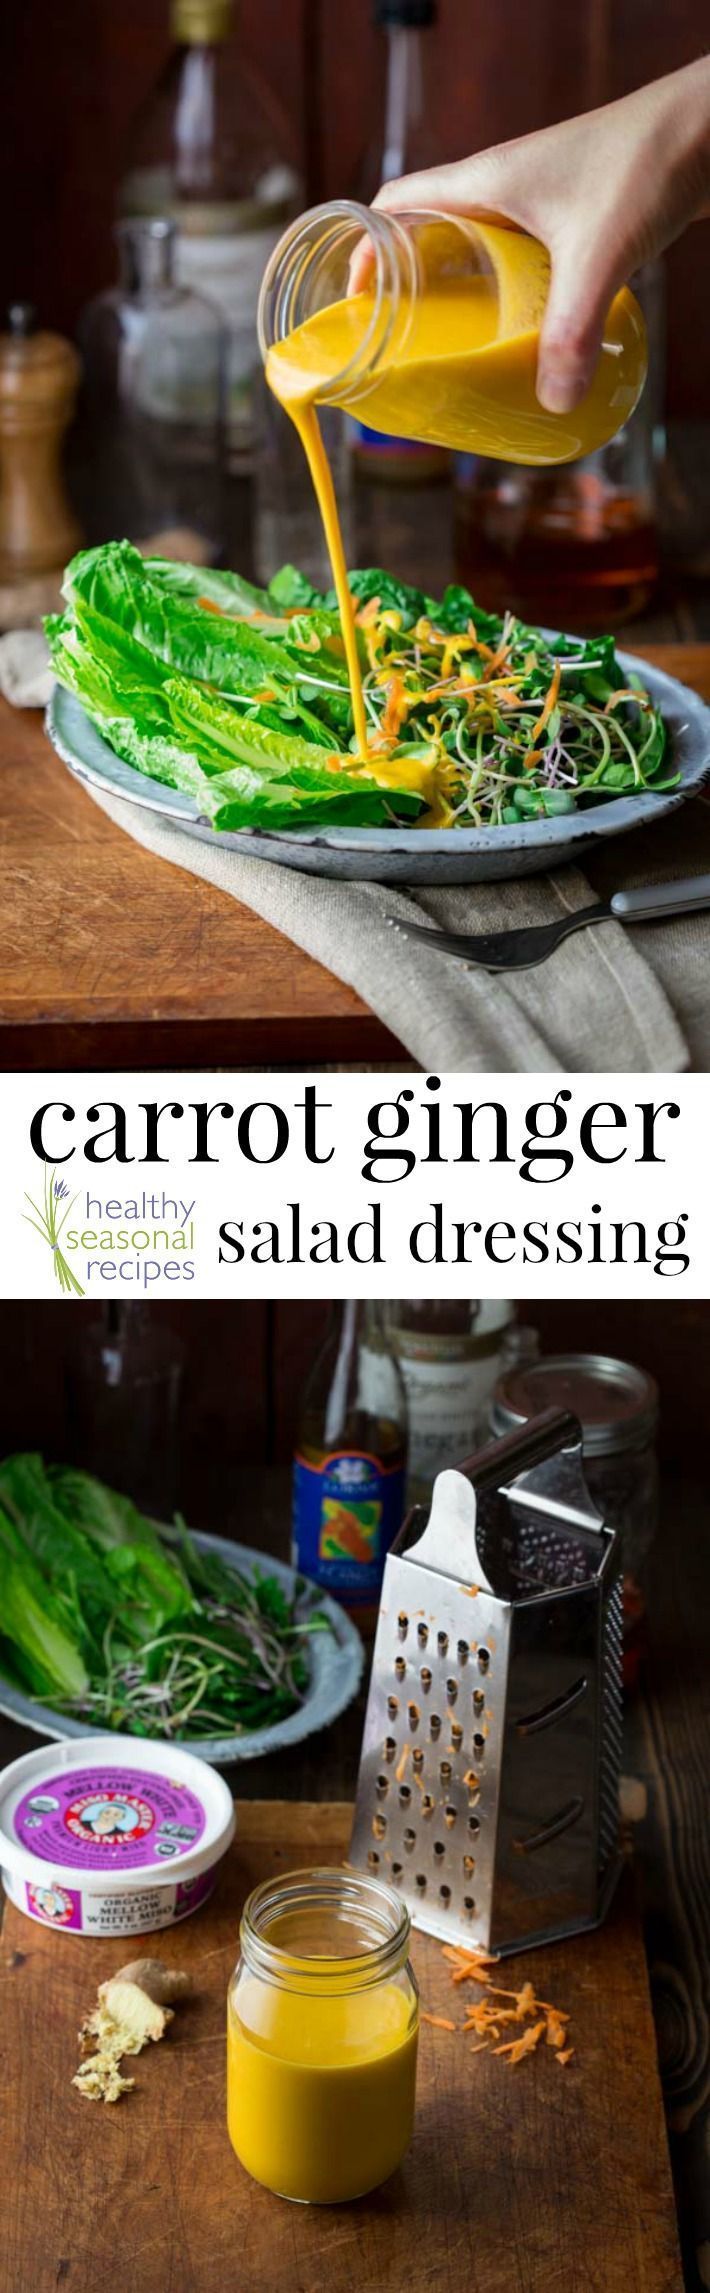 Blog post at Healthy Seasonal Recipes : If you've ever gotten salad at a Japanese restaurant, especiallyhibachi restaurantsthen you'll know what I mean when I talk about th[..]